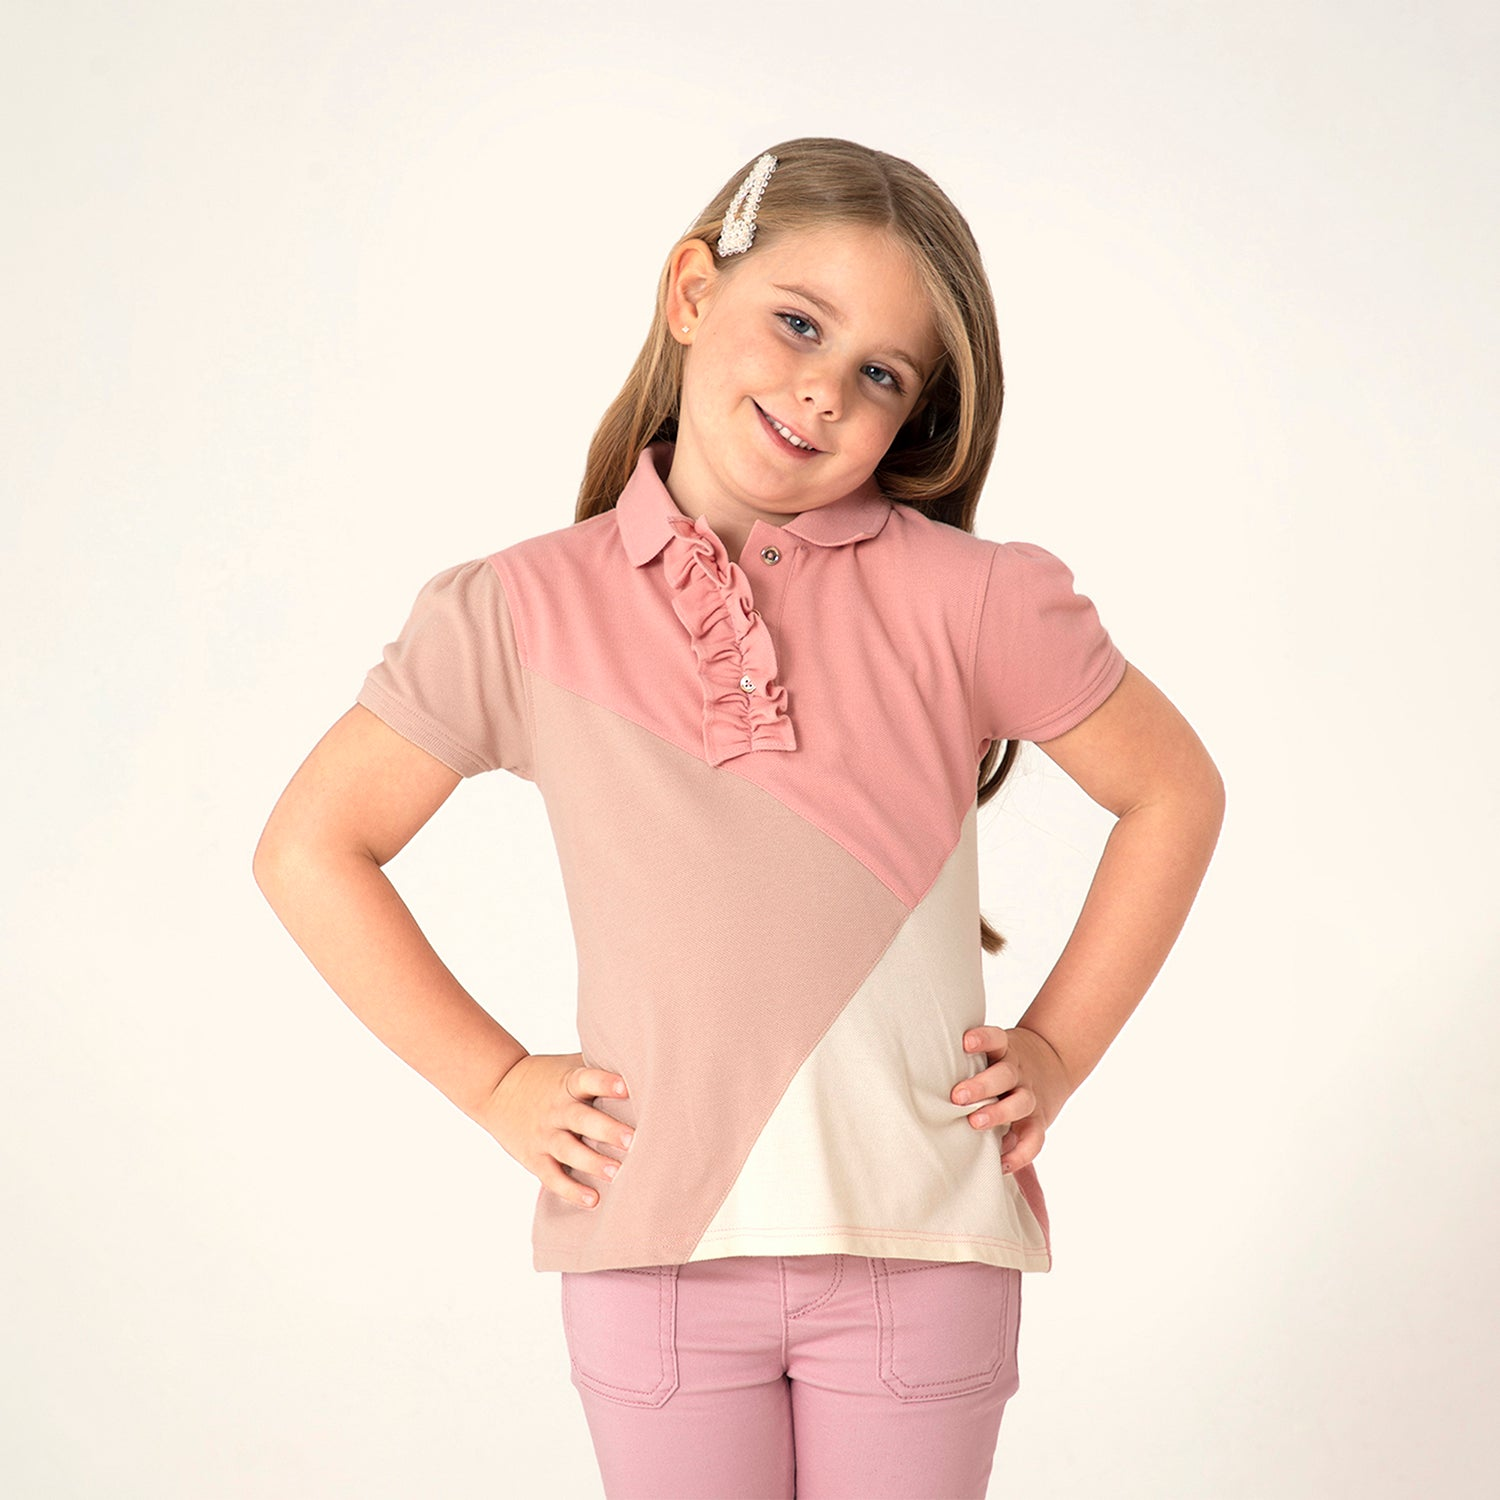 Cherry-Crumble-Kids-Half-Sleeve-Puff-Sleeves-Collared-Cut-&-Sew-Polo-Top